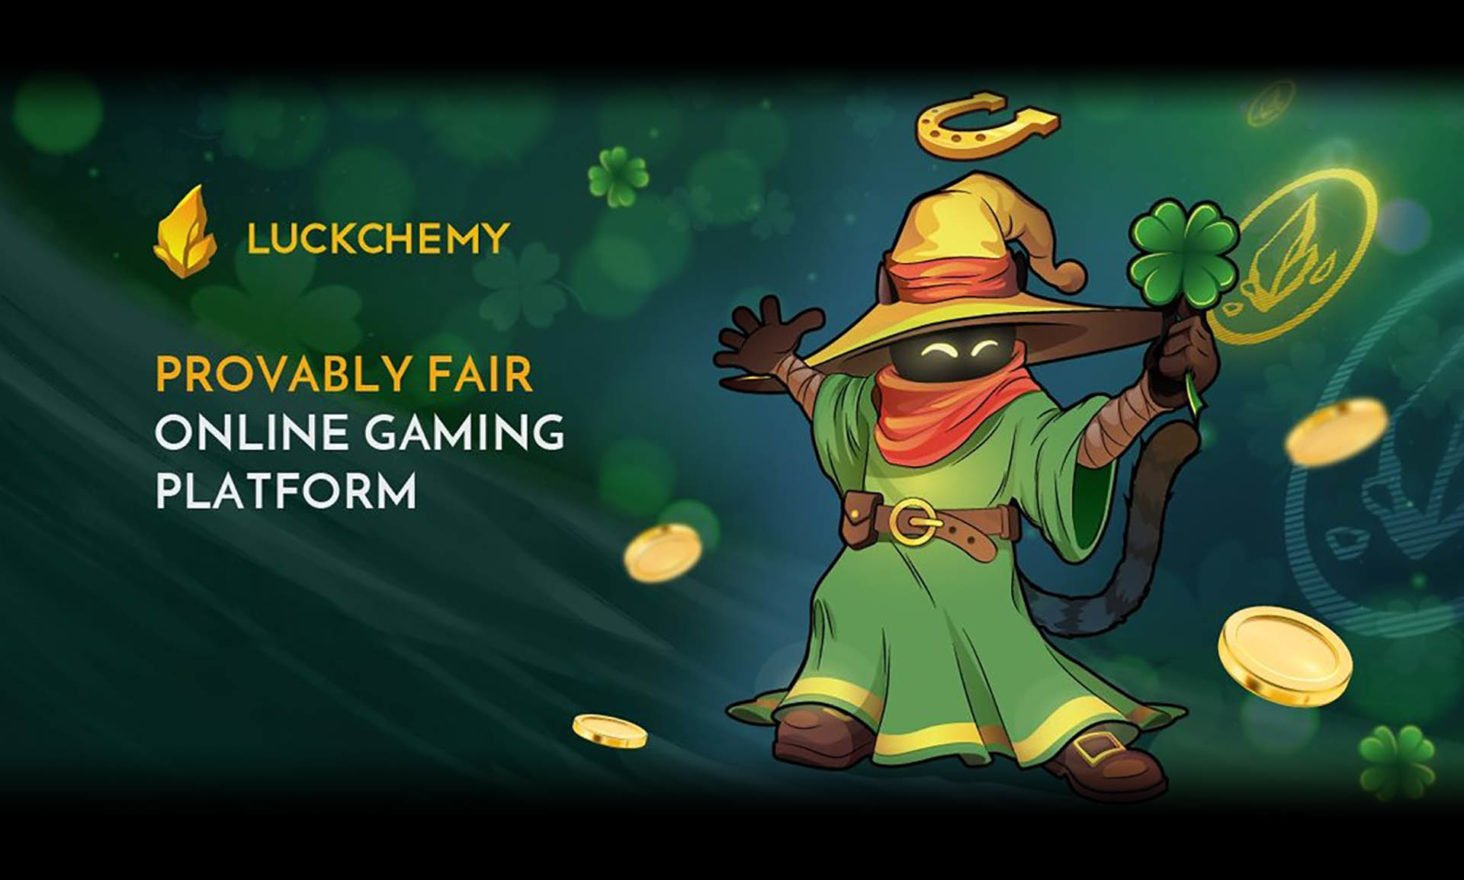 New Alchemy Successfully Audits Luckchemy's Smart Contracts, Finds No Critical Vulnerabilities